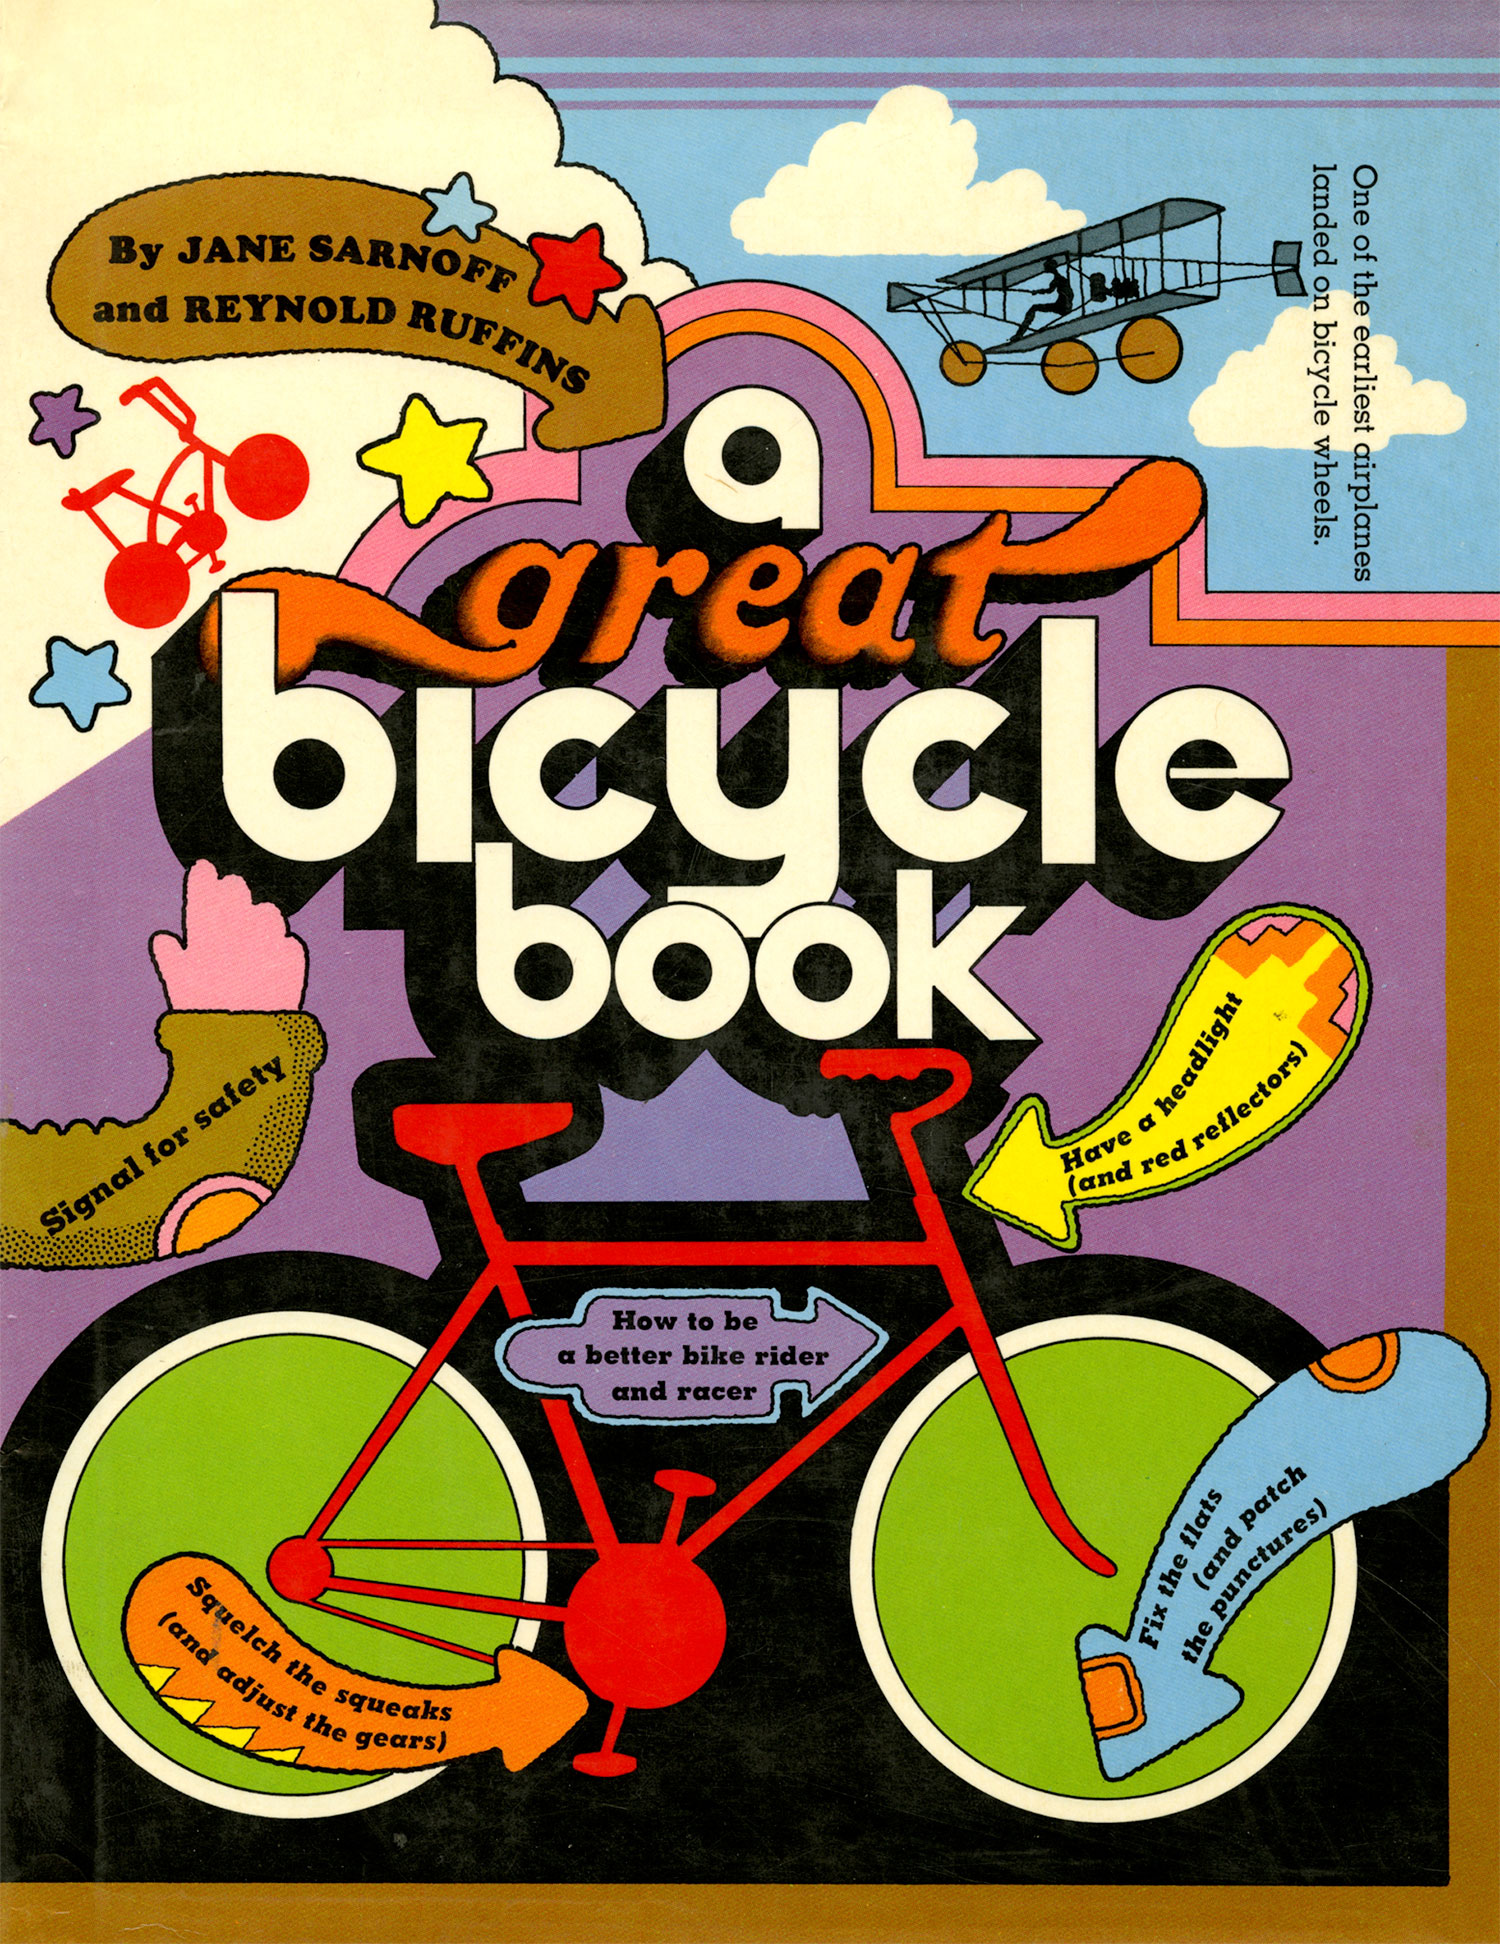 Bicycle-Book-cover.jpg